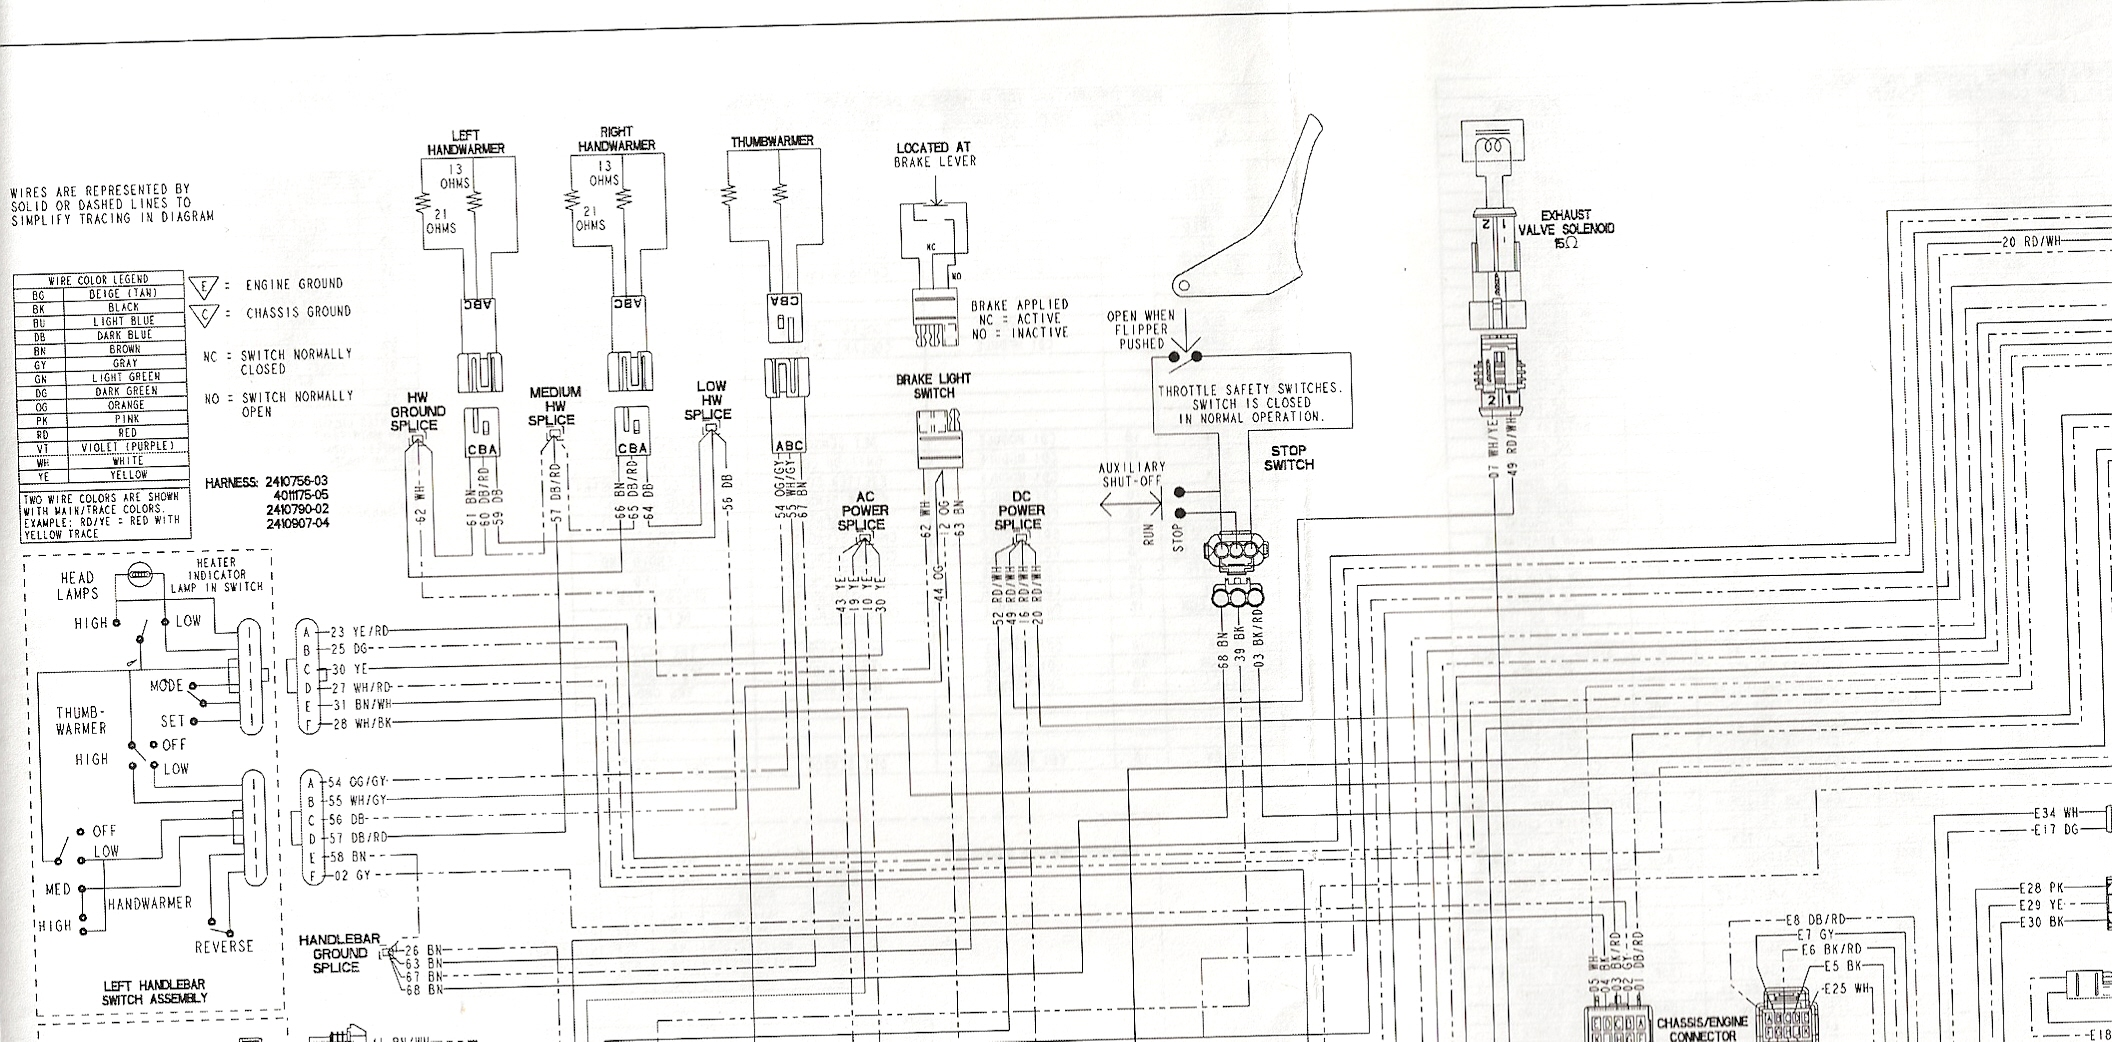 polaris 07 iq 600 wiring schematic 07 polaris iq 700 Polaris Snowmobile  Engine Diagrams 2002 Polaris Snowmobile Wiring Diagrams